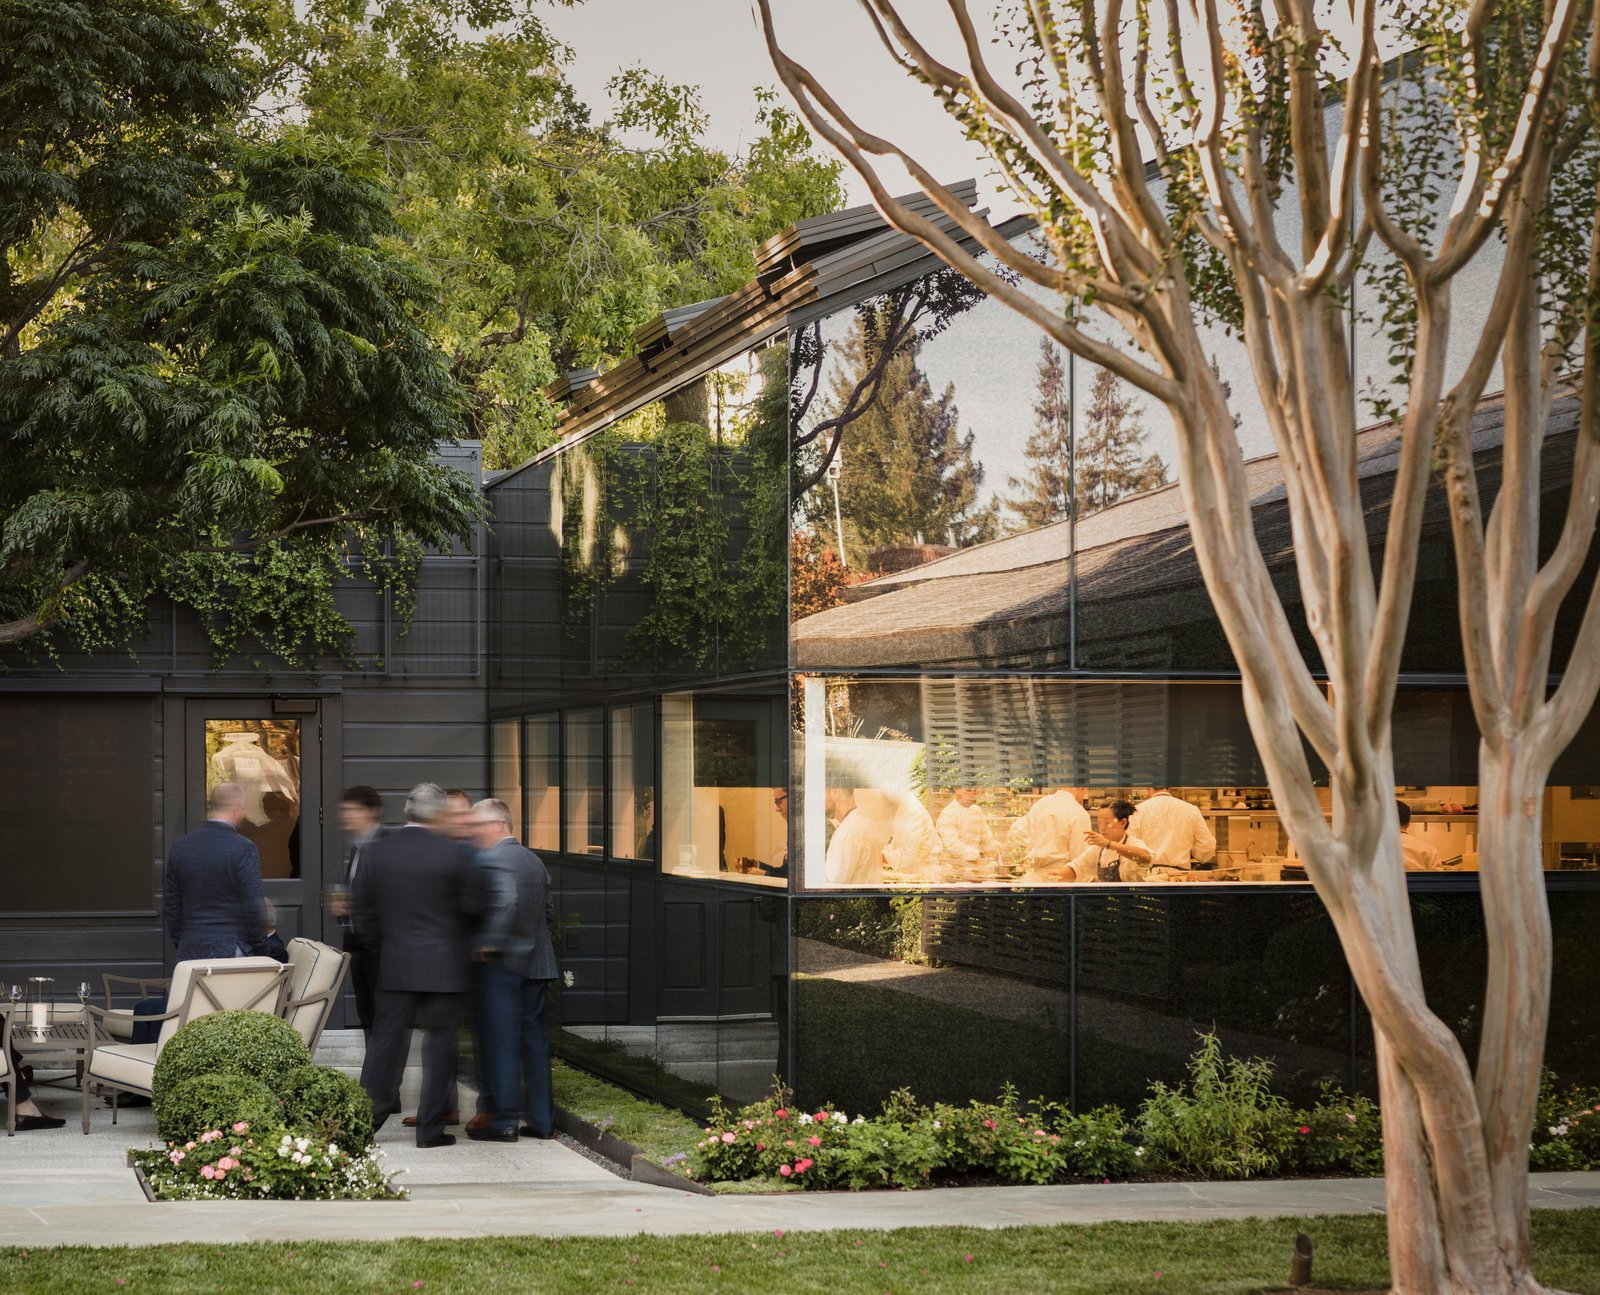 The pitched, low-slung roofs of the kitchen and annex allude to their utilitarian function. Tagged: Exterior, Wood Siding Material, Gable RoofLine, and Glass Siding Material.  Best Photos from A Look Inside The French Laundry's Stunning $10M Renovation